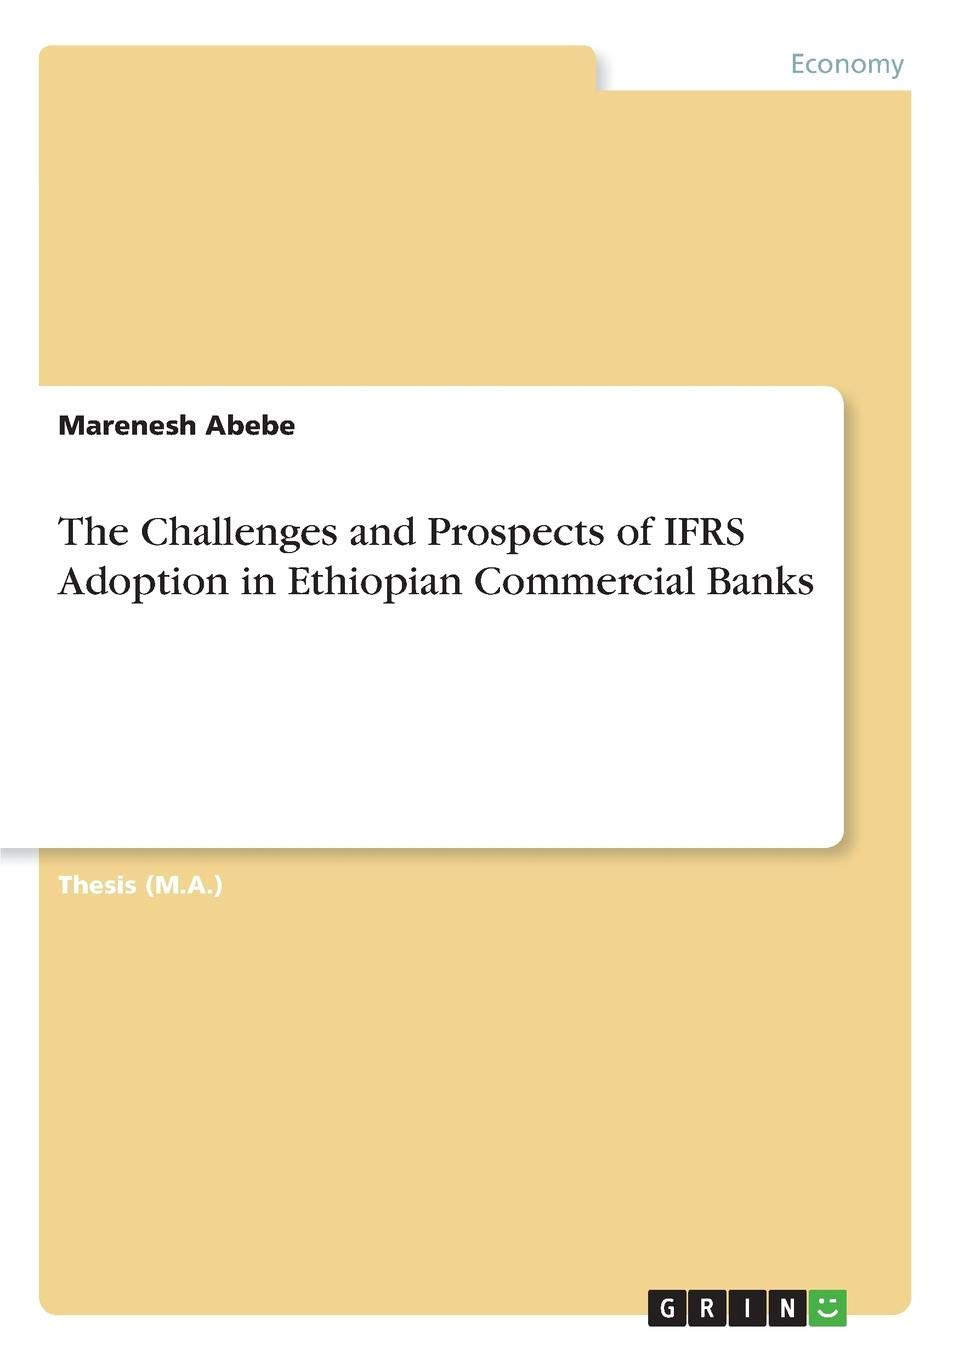 The Challenges and Prospects of Ifrs Adoption in Ethiopian